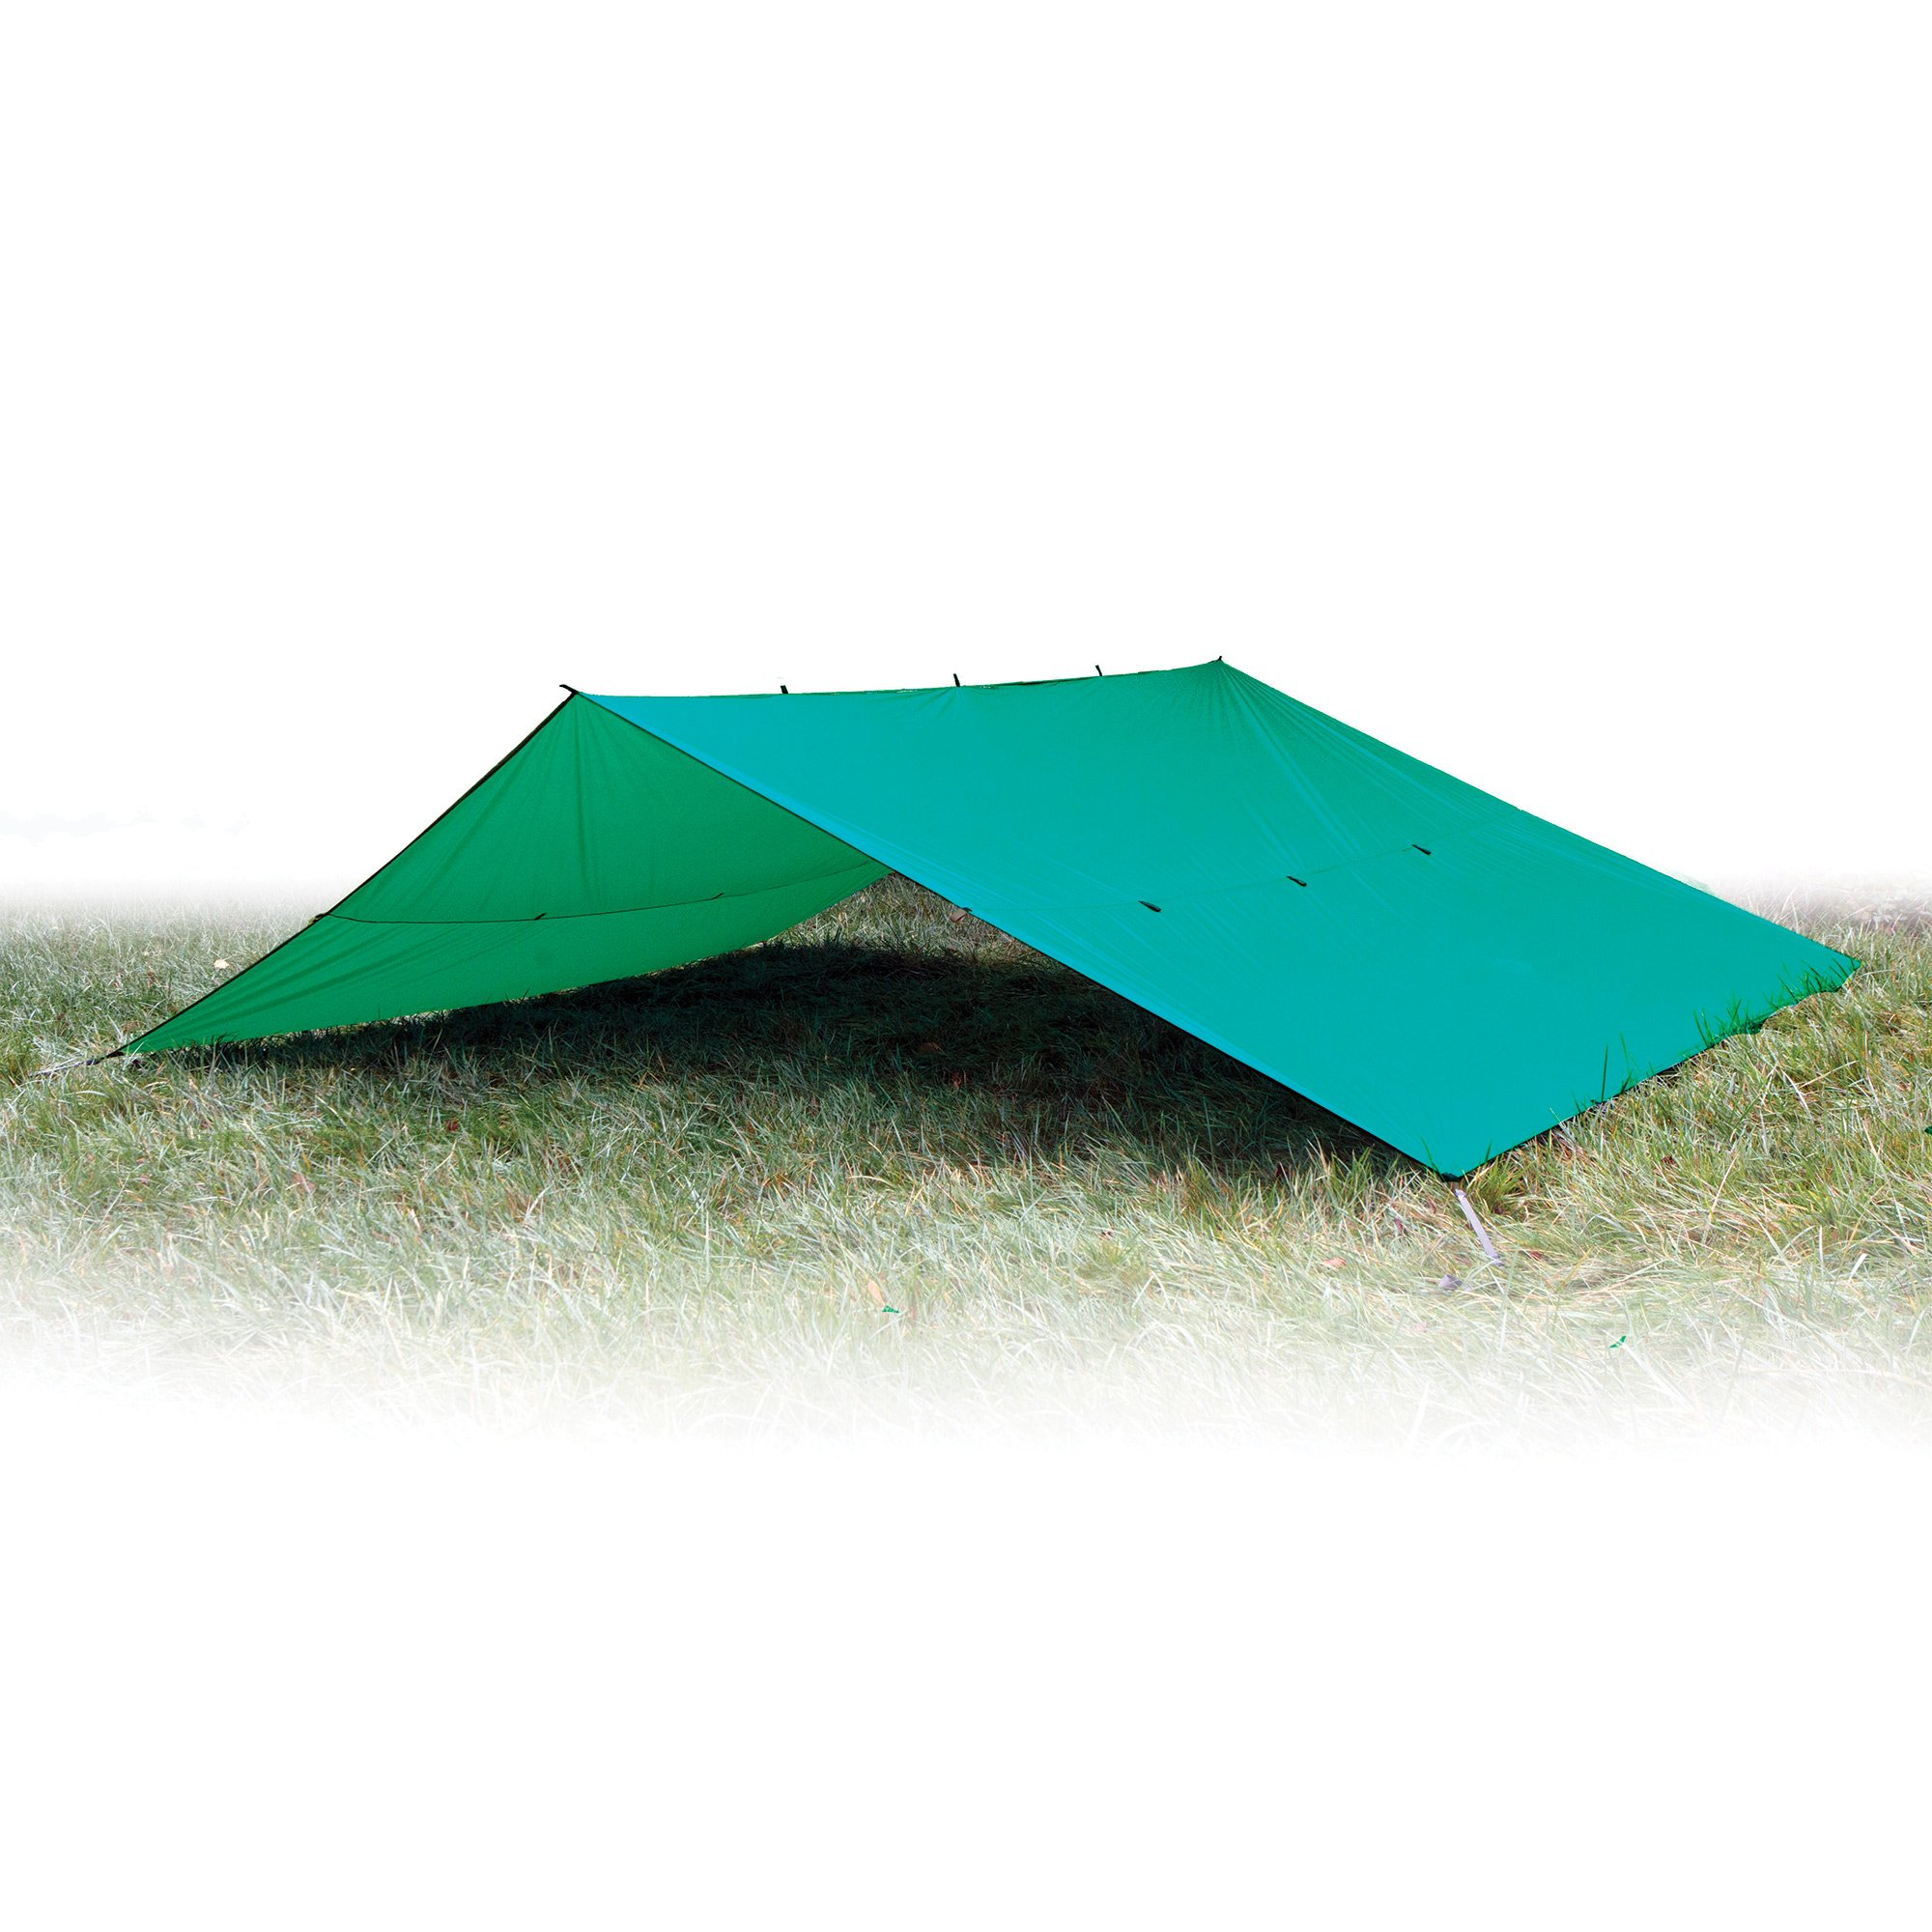 Aqua Quest Guide Tarp XL 20 x 13 ft Green - Ultralight Waterproof Rip-Stop Sil Nylon Backpacking Rain Fly - Extra Large Base Camp Shelter by Aqua Quest